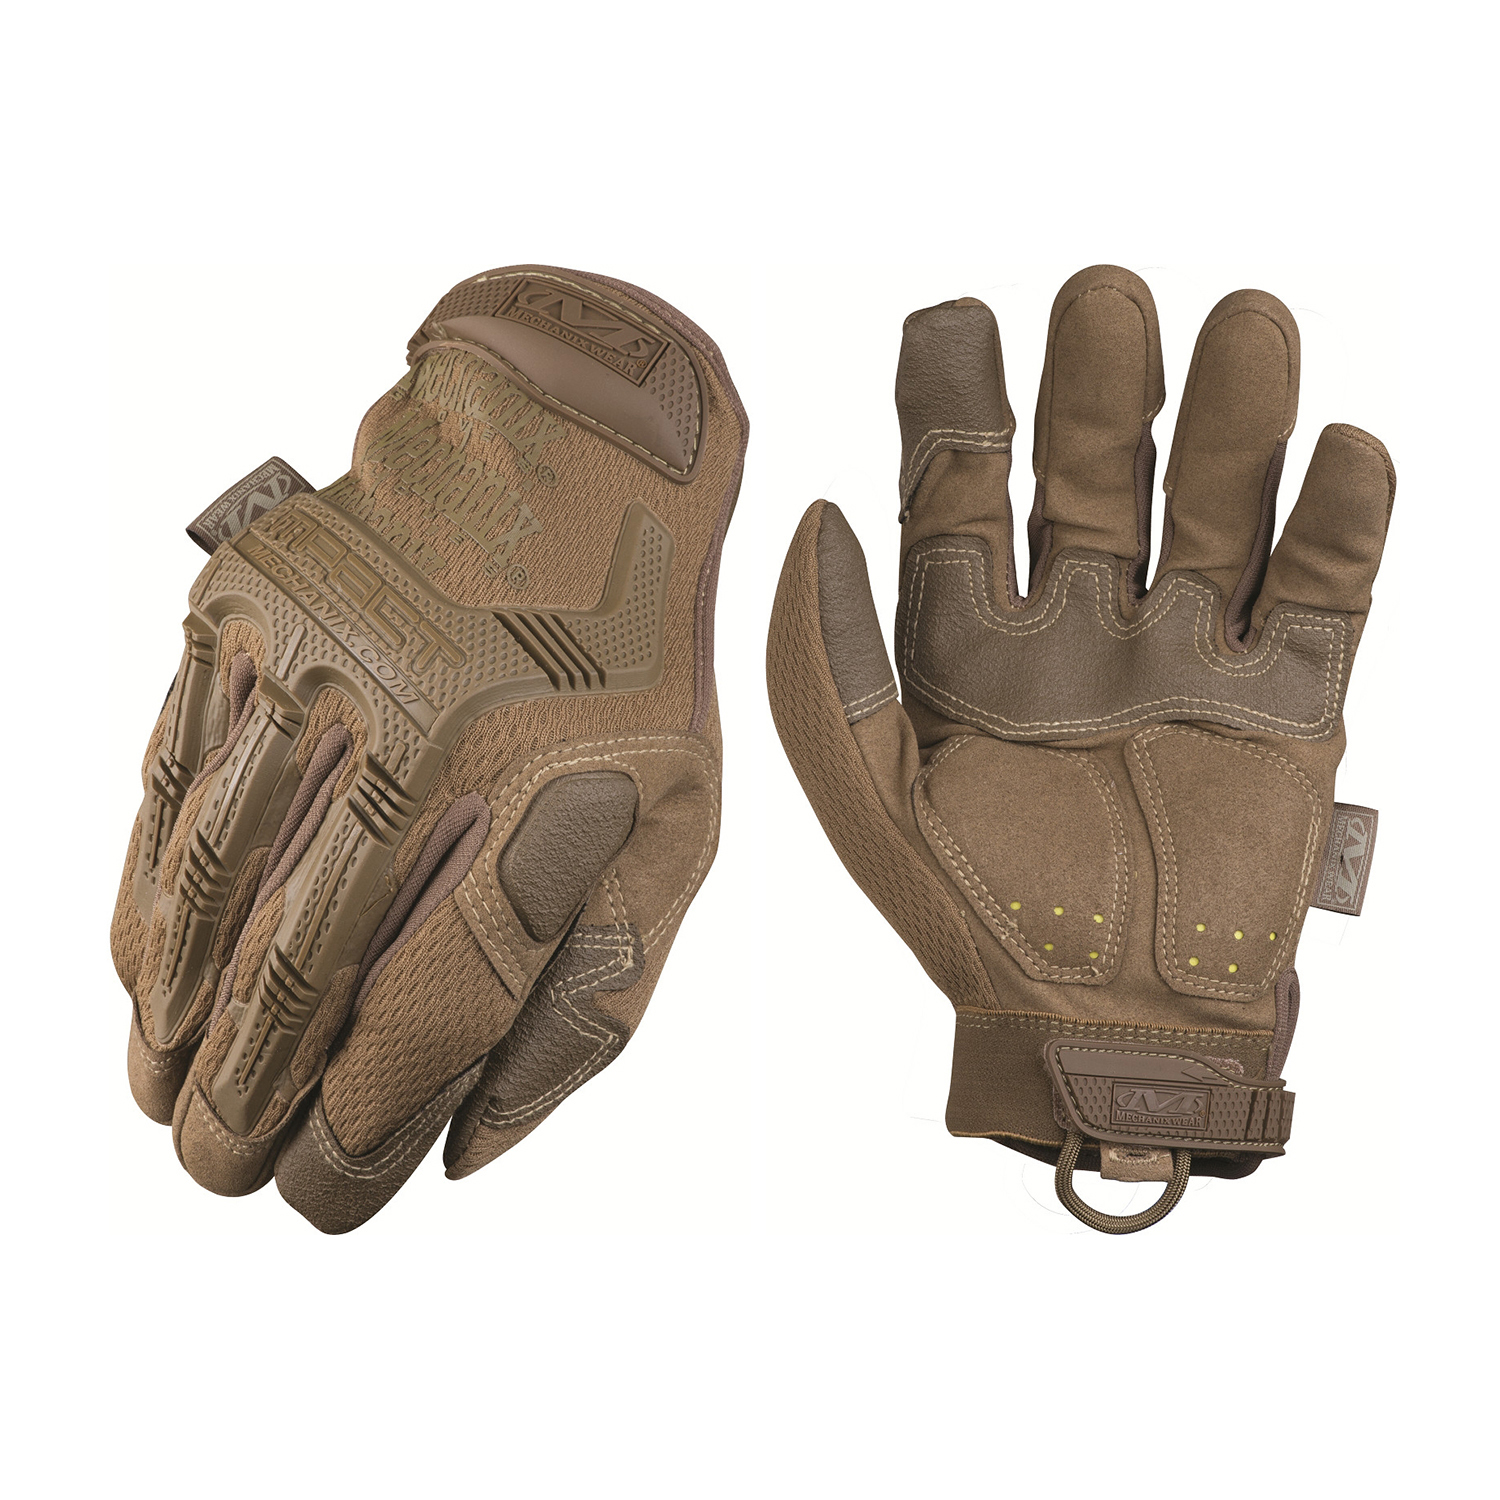 Leather work gloves ebay - Mechanix Wear M Pact Covert Work Duty Gloves